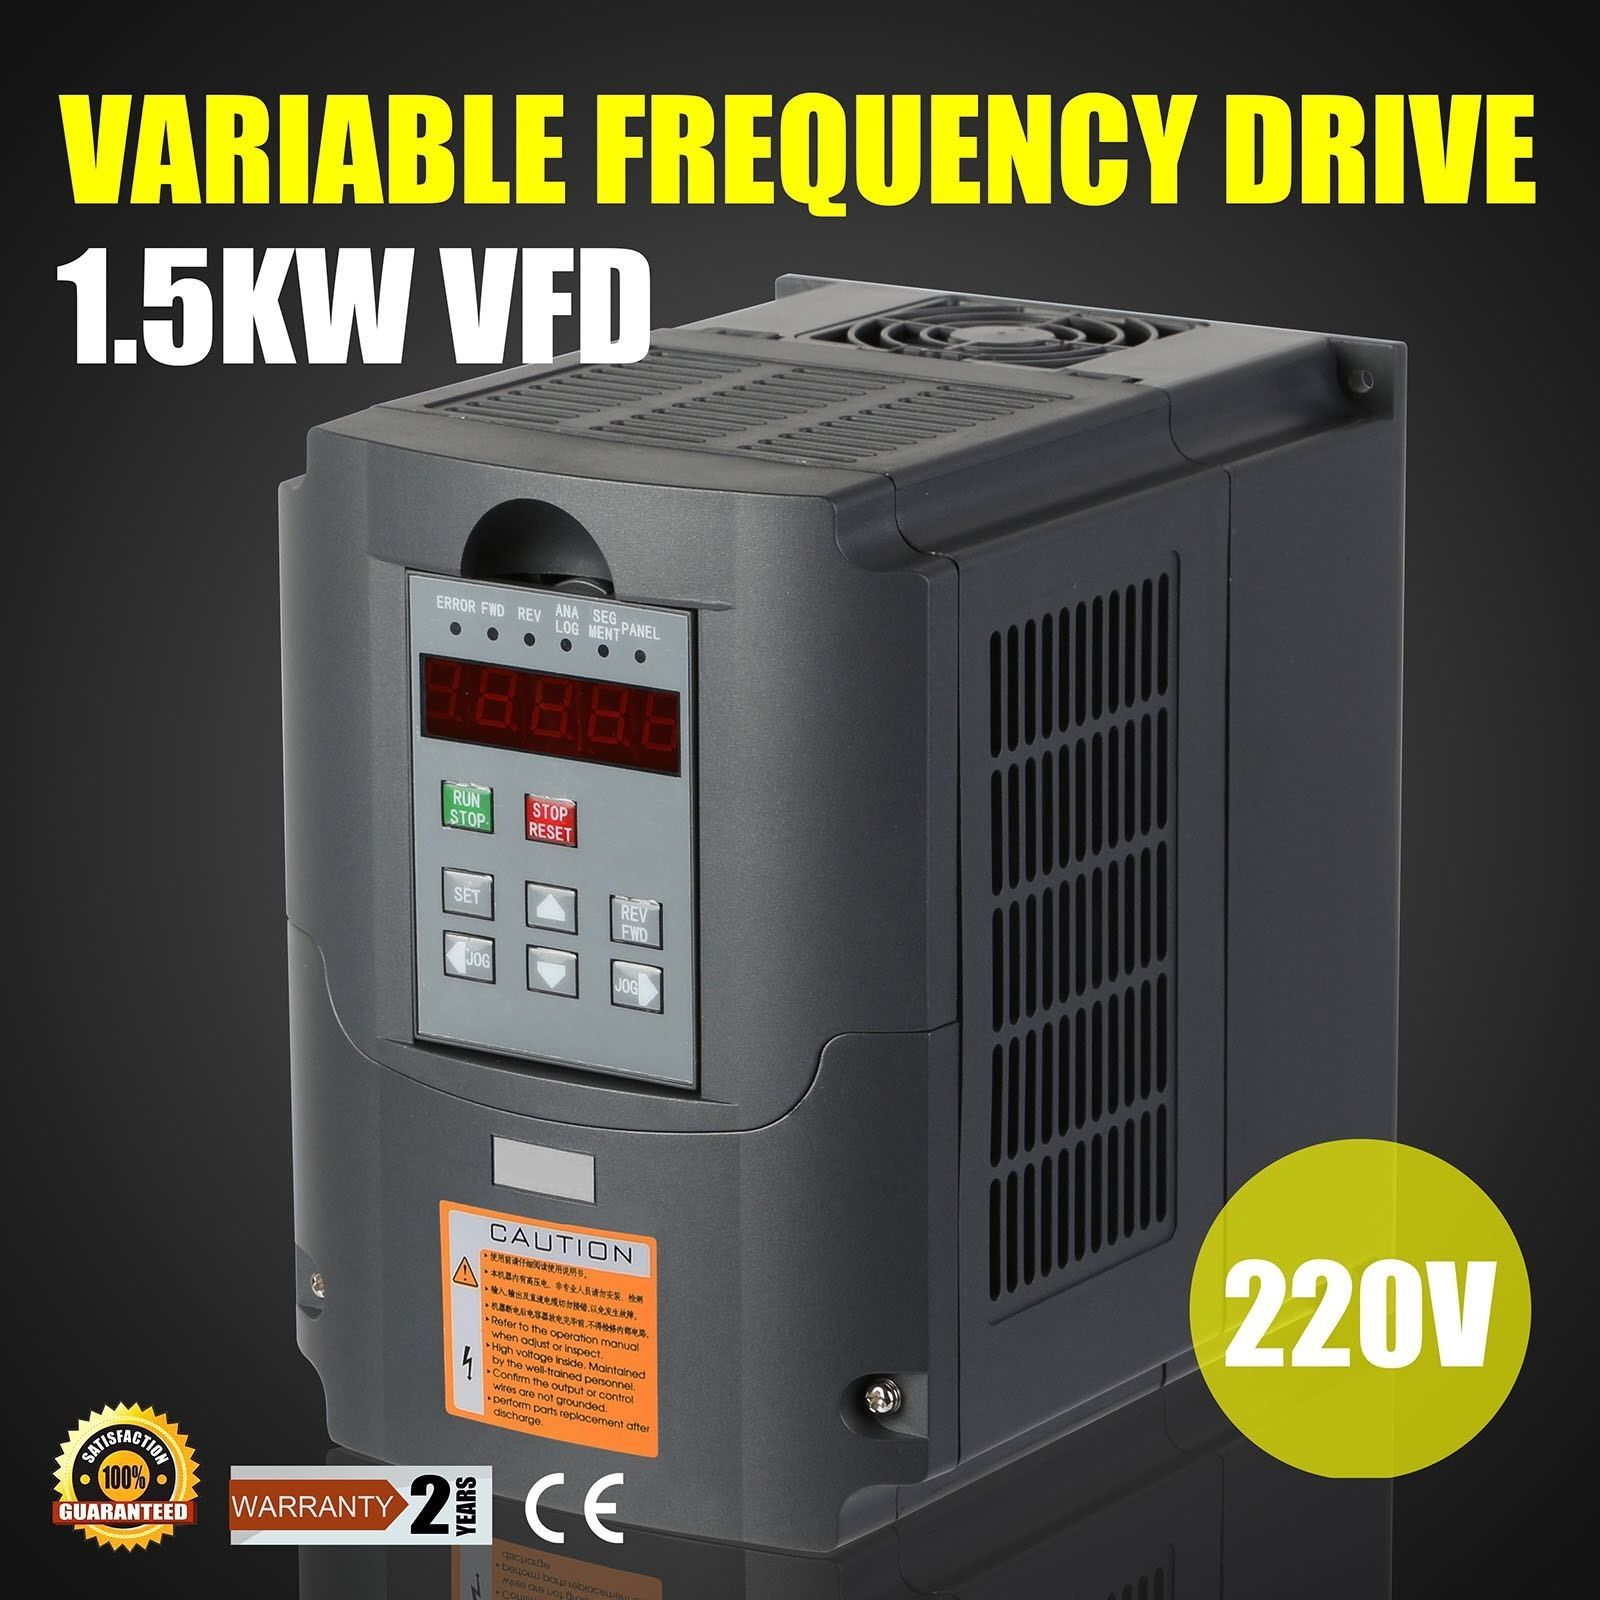 Static Inverter Drive : Frequency inverter for sale only left at